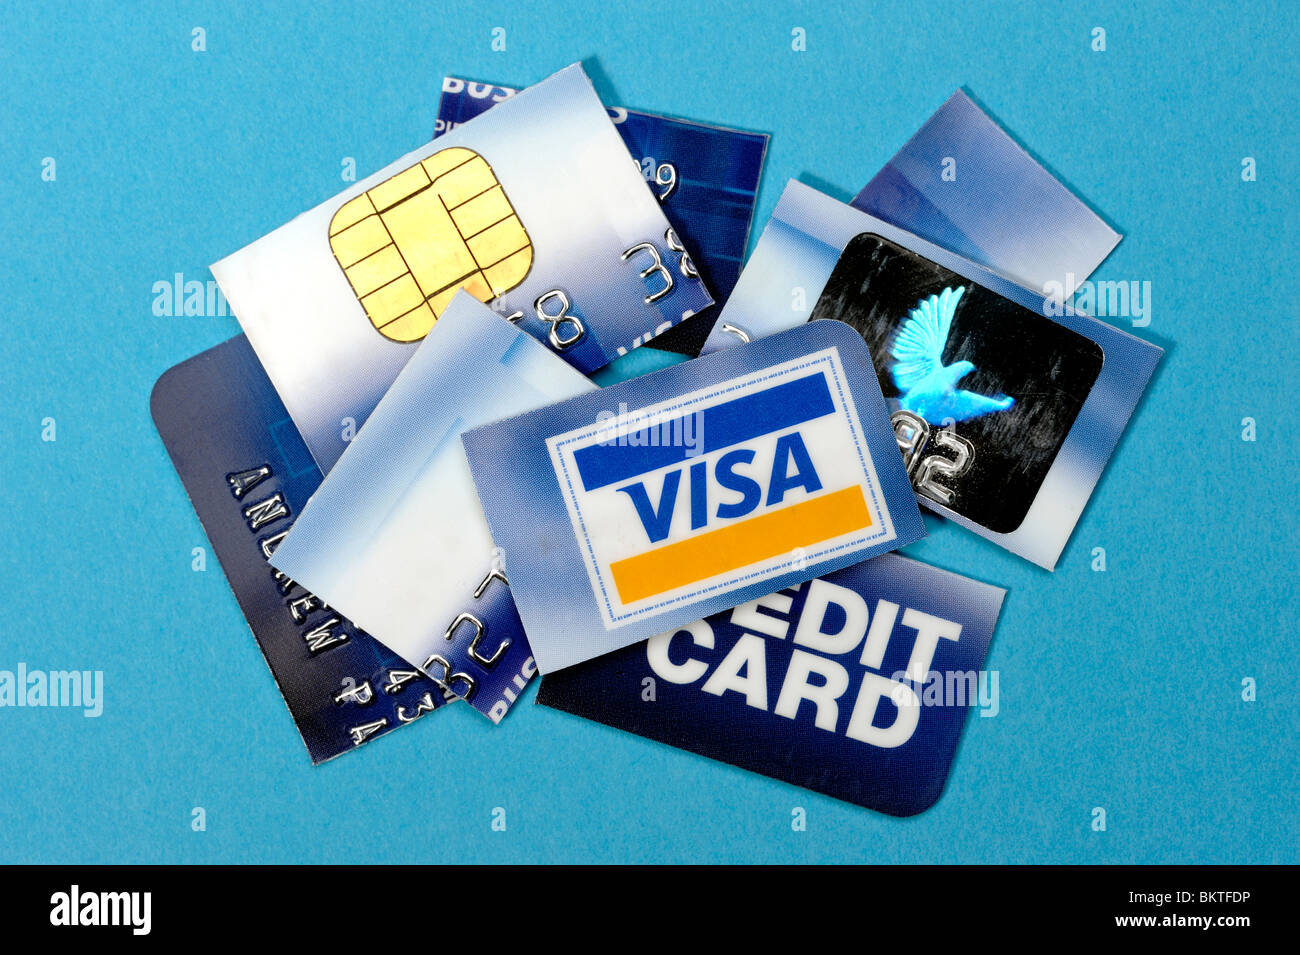 Cut up credit card - Stock Image